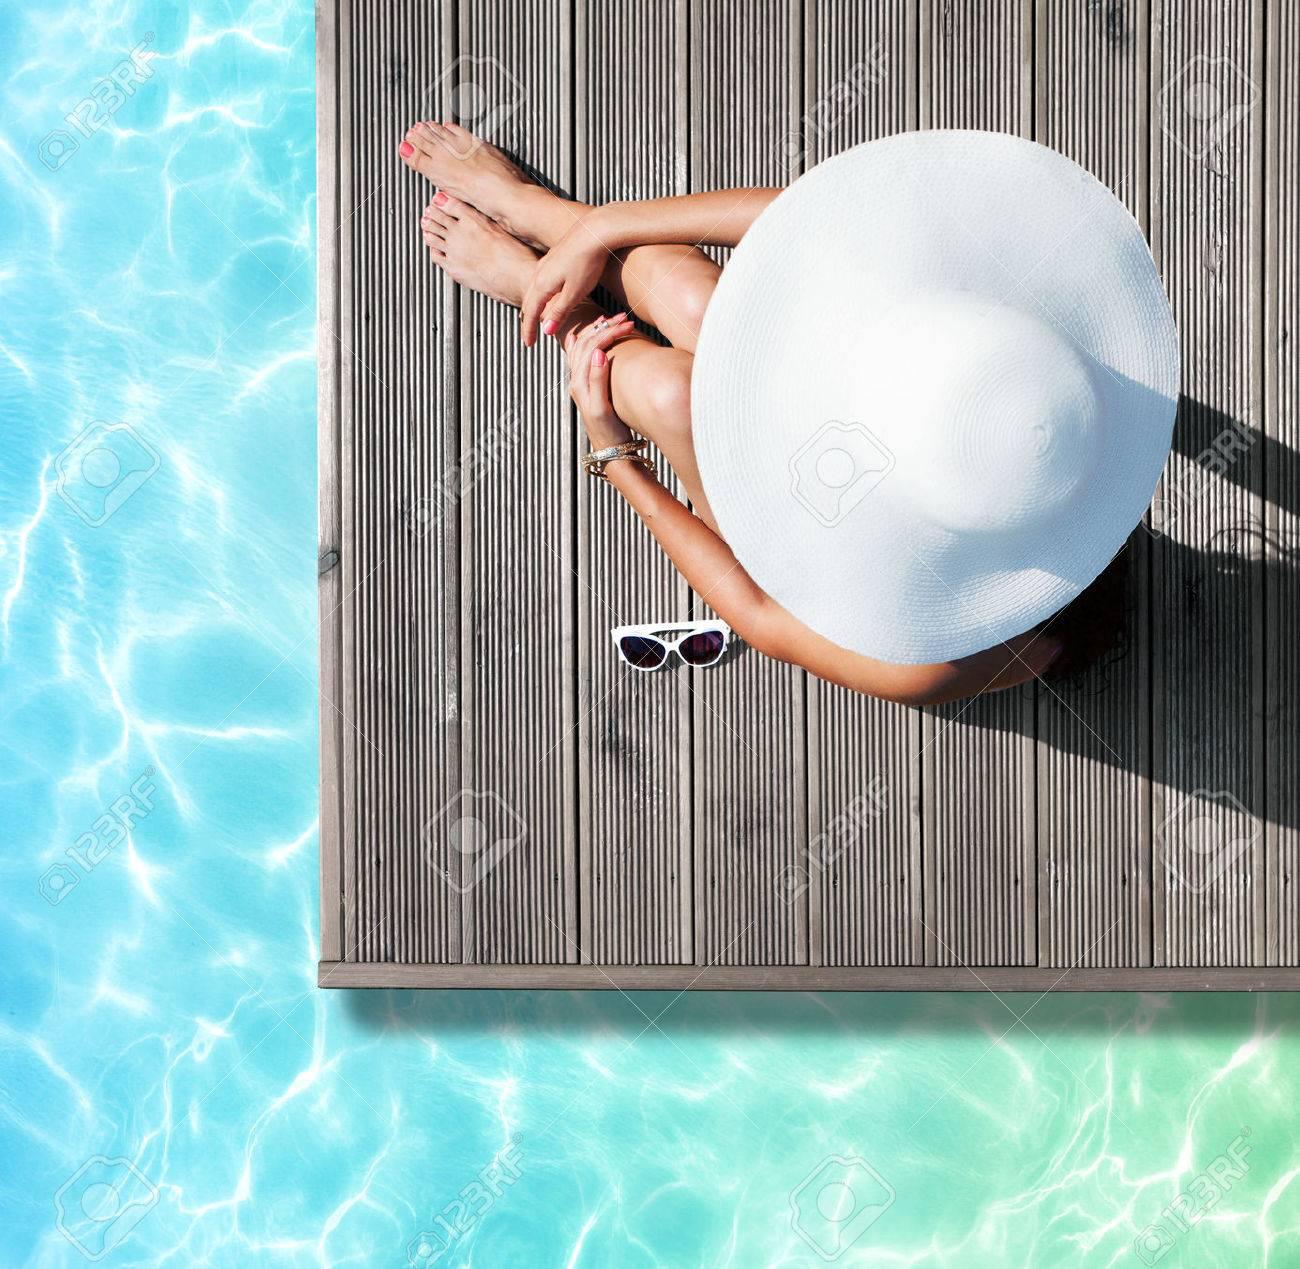 Summer holiday fashion concept - tanning woman wearing sun hat at the pool on a wooden pier view from above - 43150961